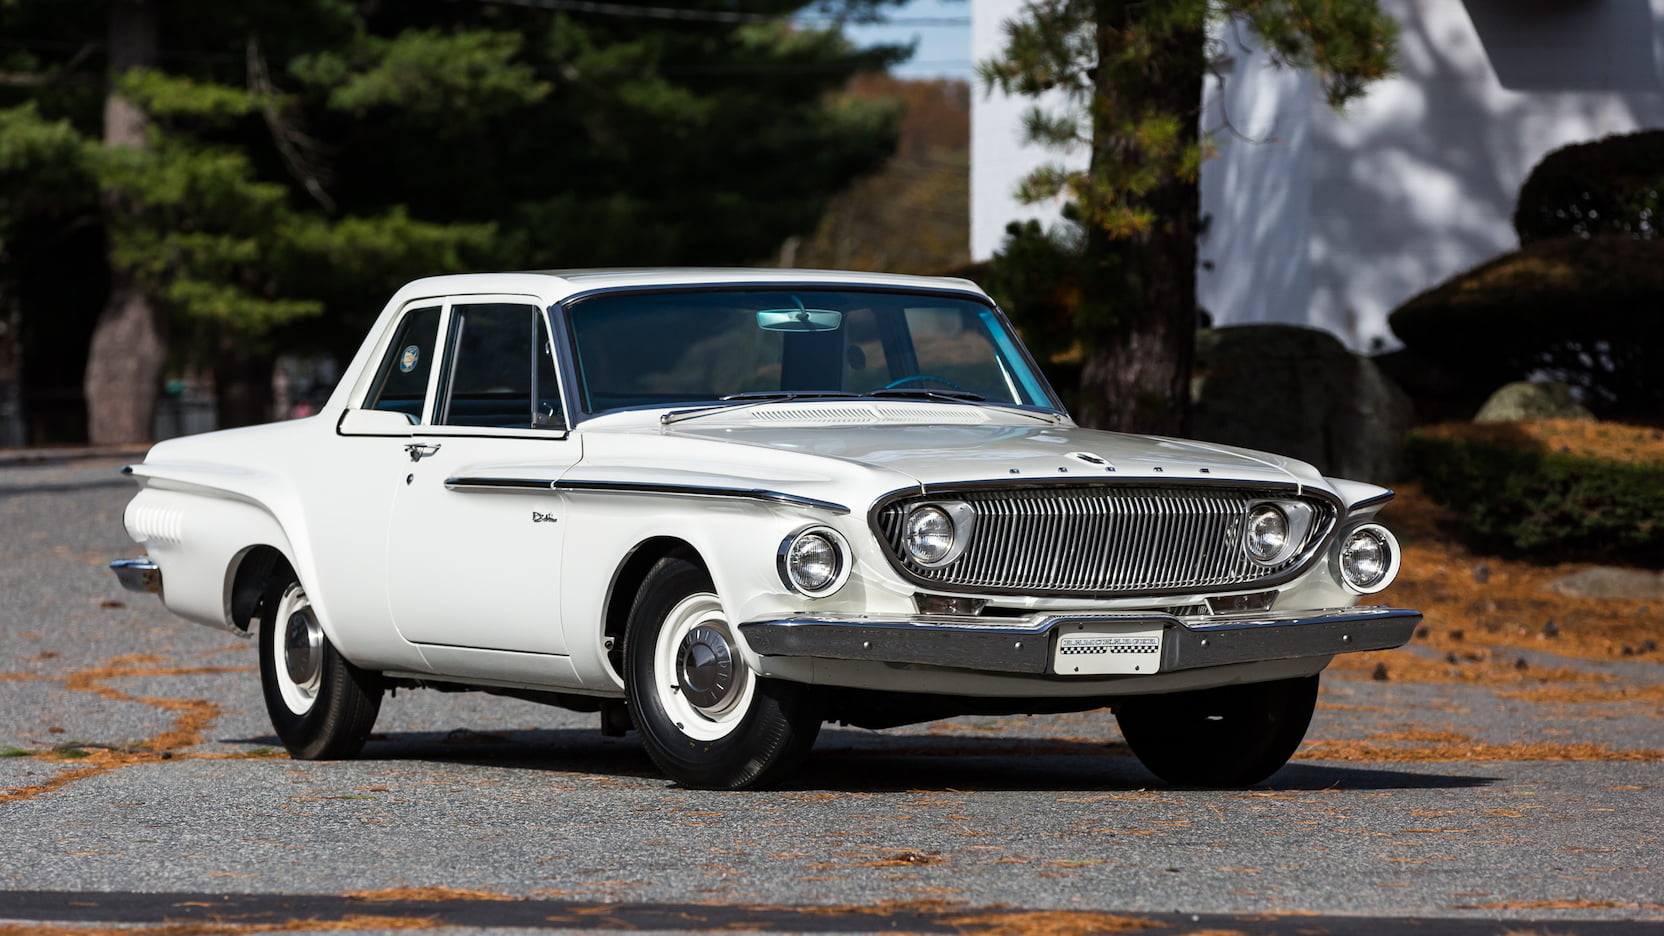 1962 Dodge Dart 300 with a 413 Max Wedge engine